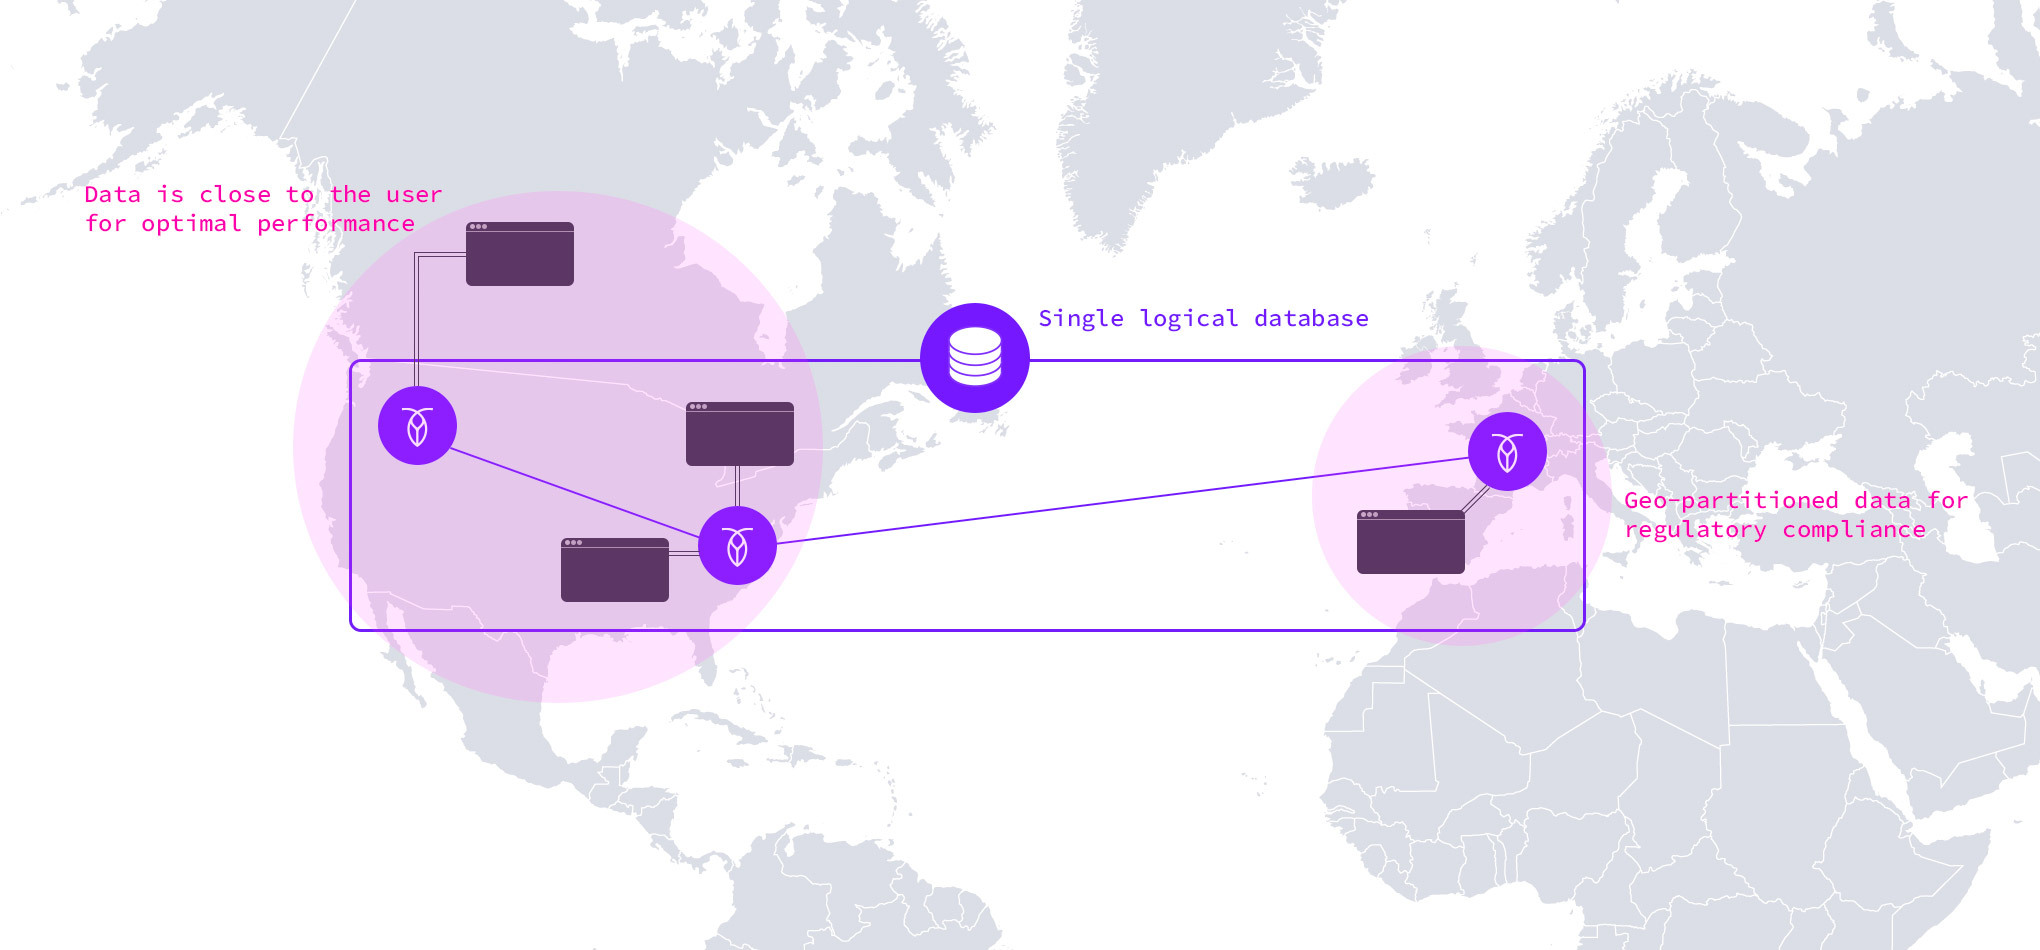 Banking data is geo-partitioned by row across Europe and the United States for GDPR compliance